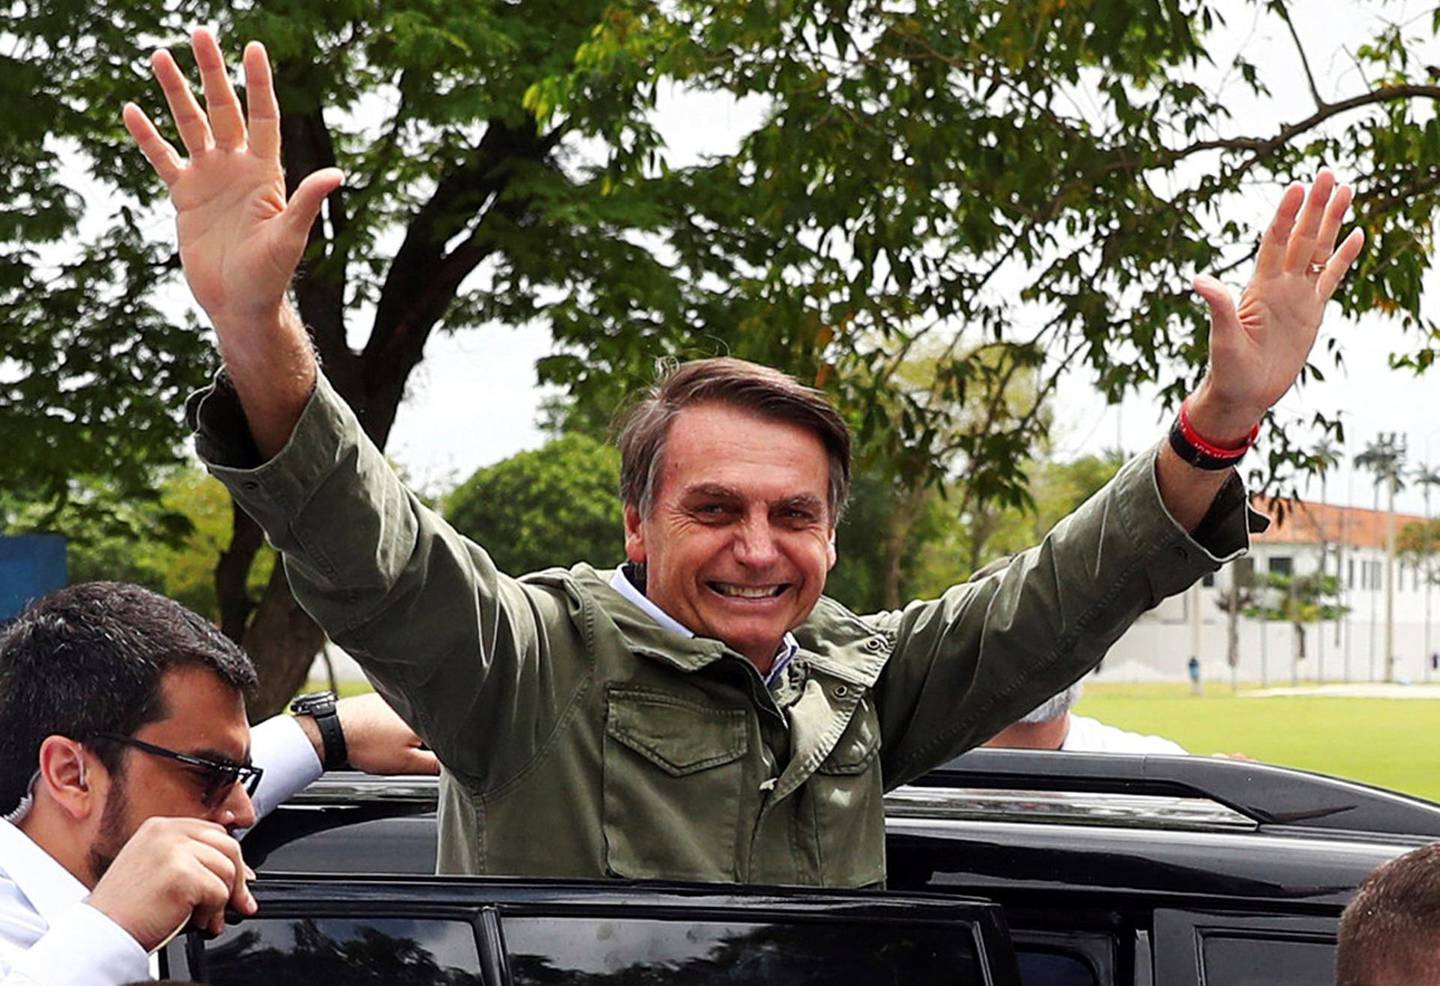 Jair Bolsonaro, far-right lawmaker and presidential candidate of the Social Liberal Party (PSL), gestures during a runoff election, in Rio de Janeiro, Brazil October 28, 2018. REUTERS/Pilar Olivares